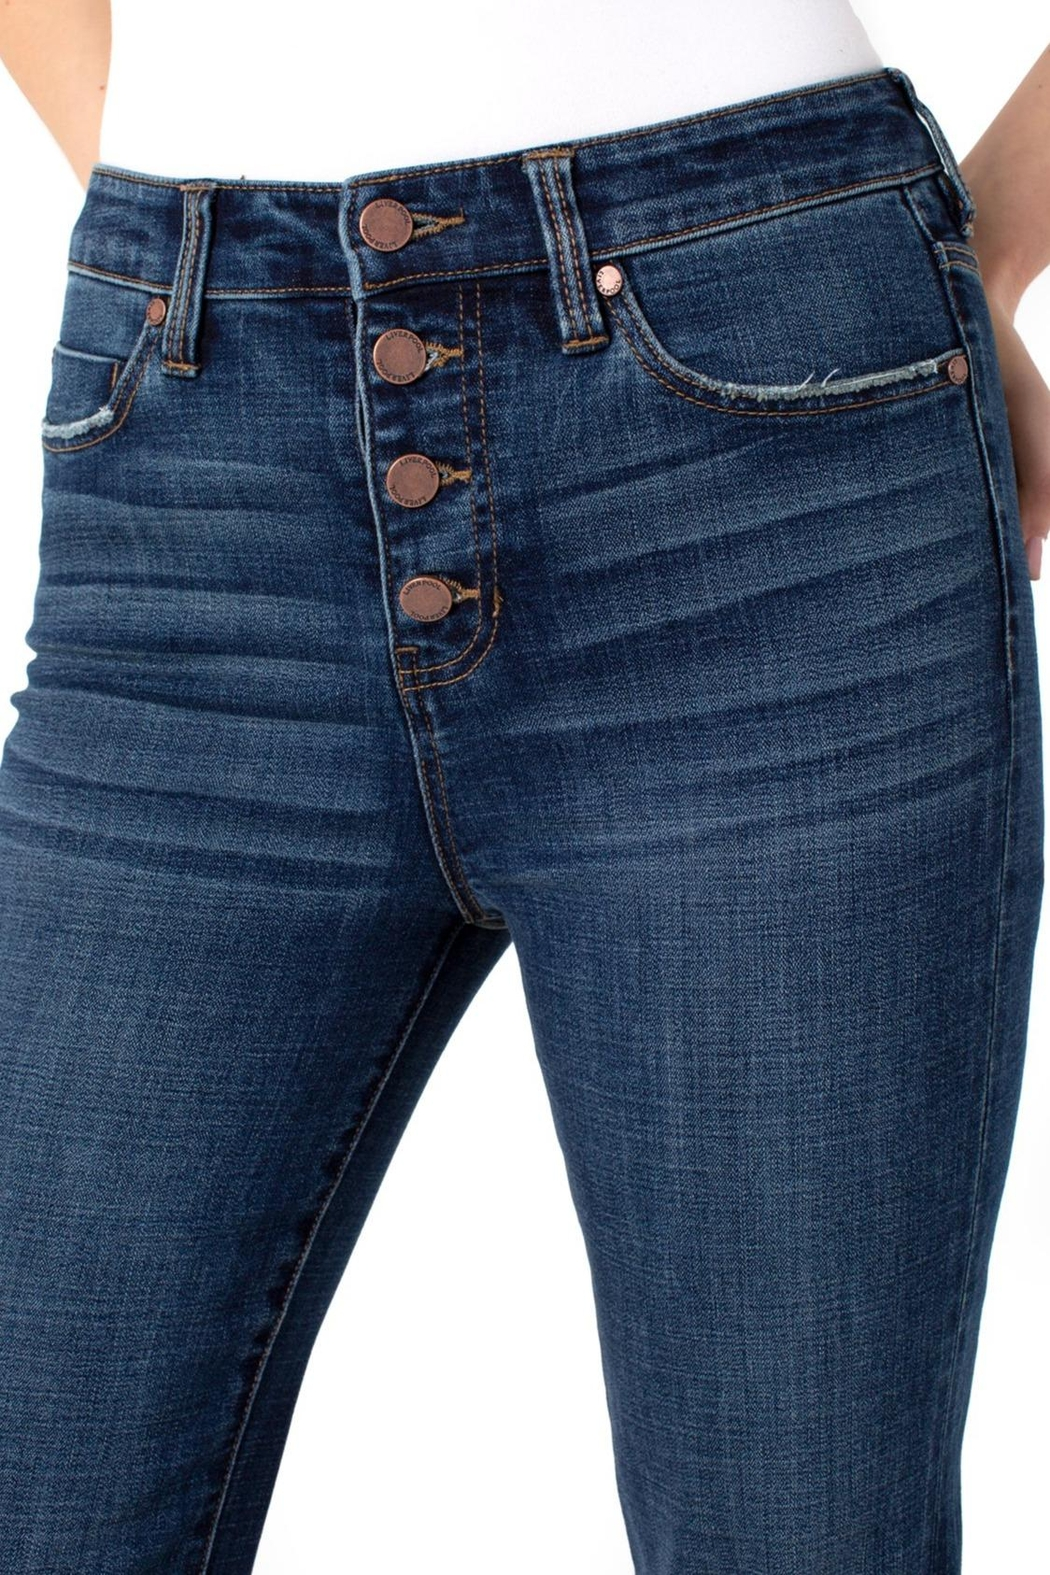 Liverpool Jeans Company Hi-Rise Flare Exposed Buttons Fray Hem Jeans - Front Full Image